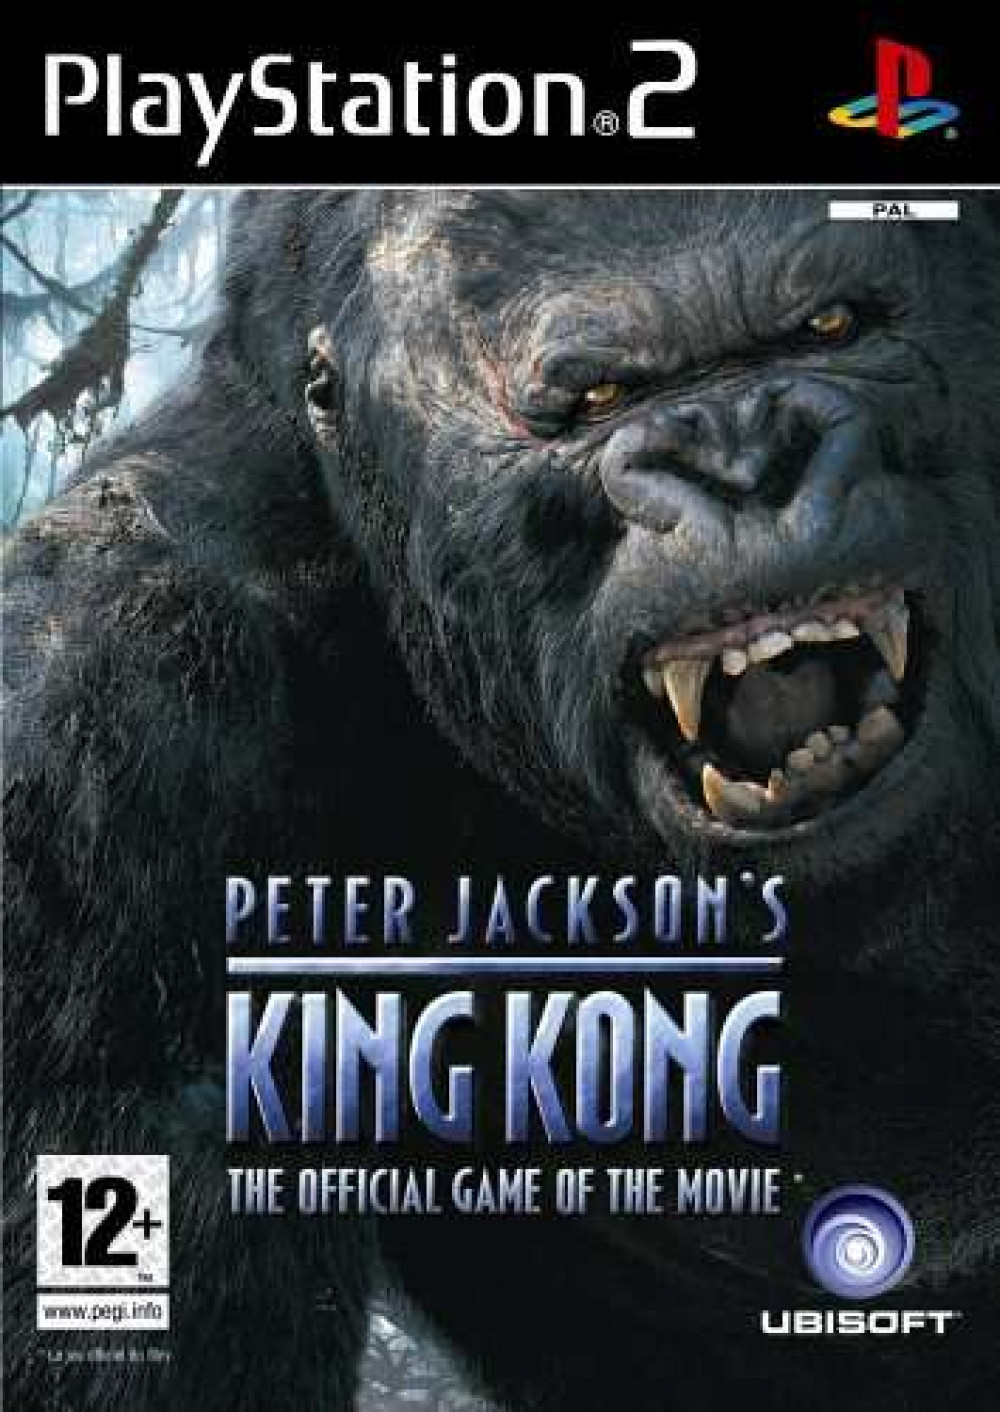 Peter Jackson's King Kong The Official Game of the Movie PS2